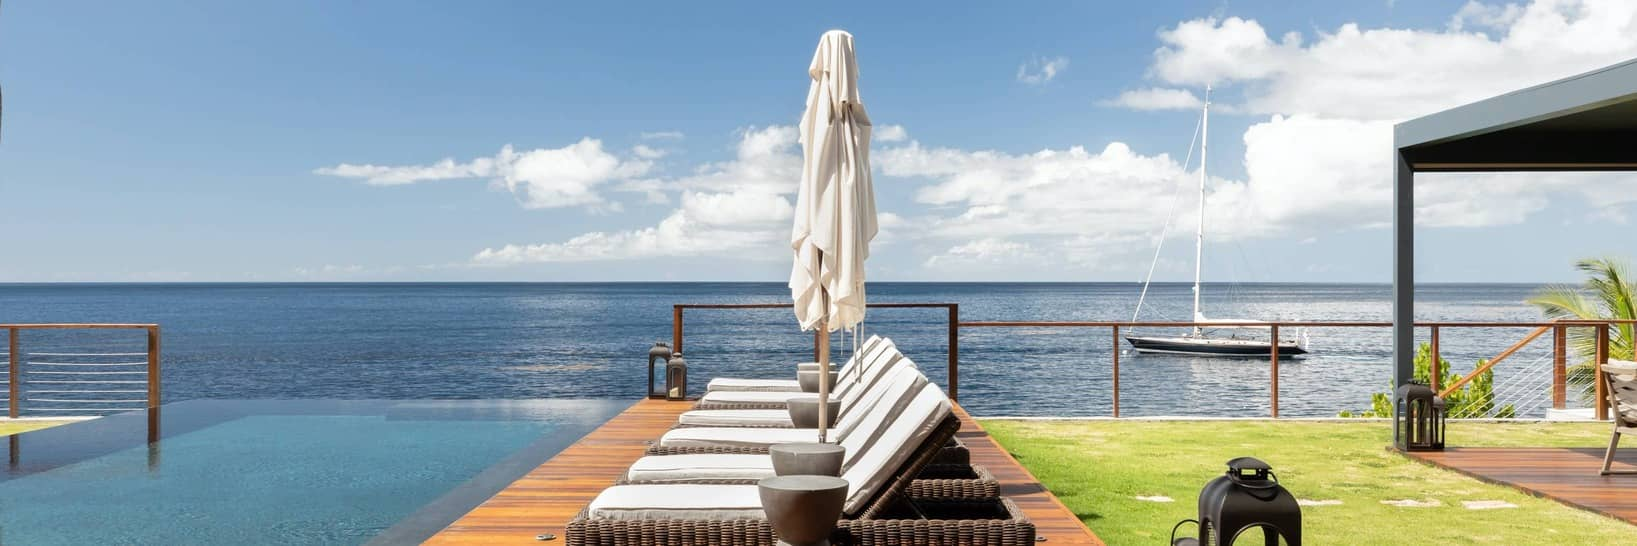 Luxury rentals in St. Lucia